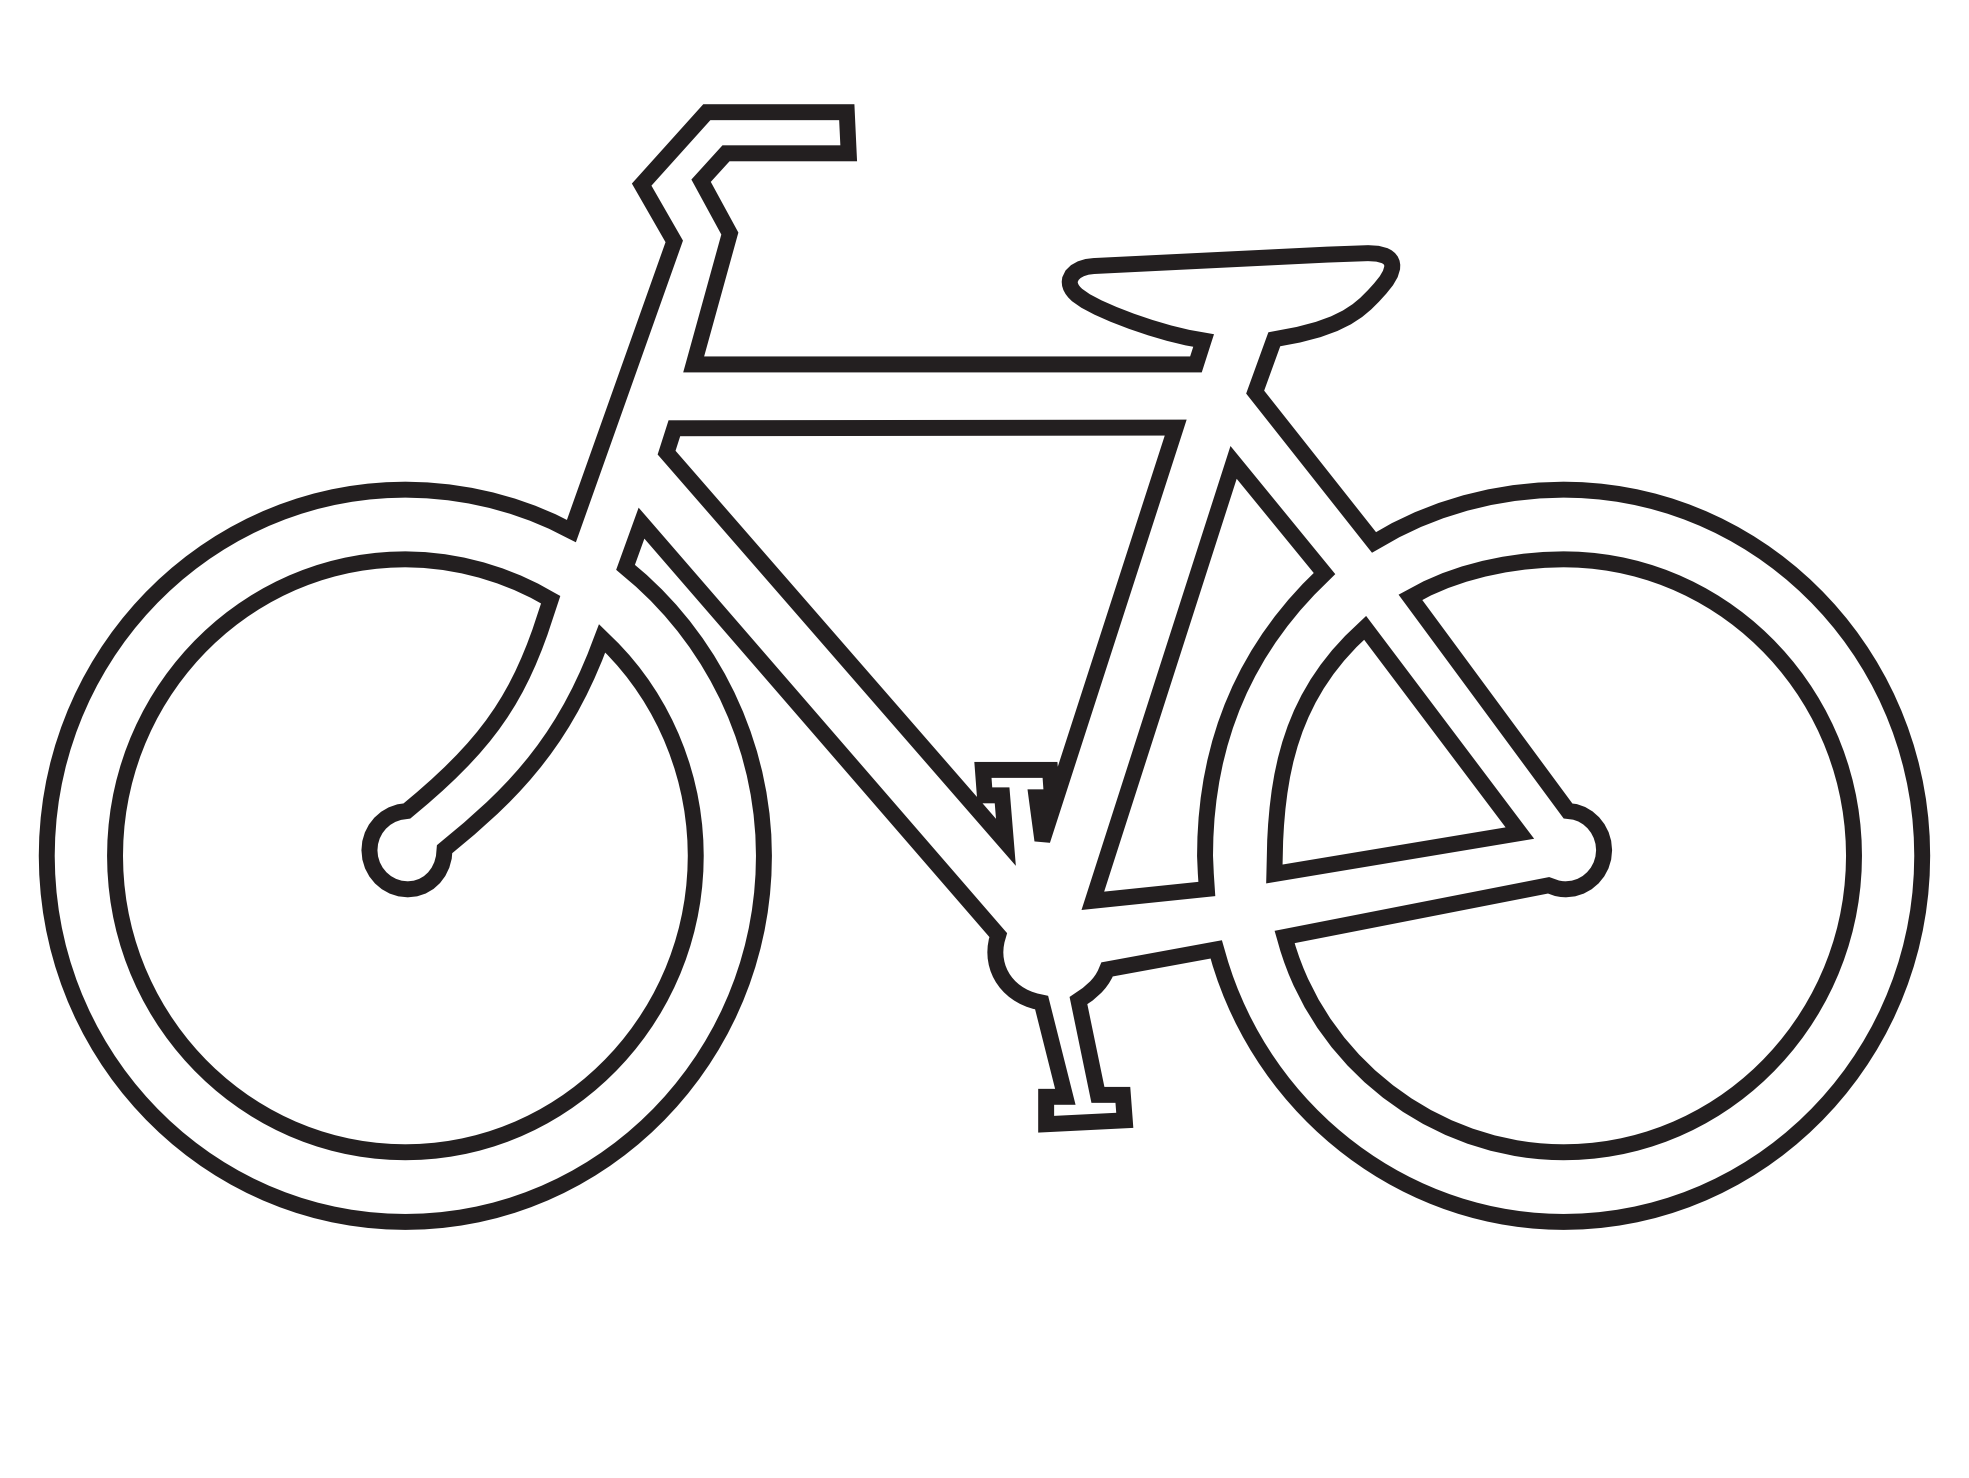 Free Black And White Bicycle Images, Download Free Clip Art.